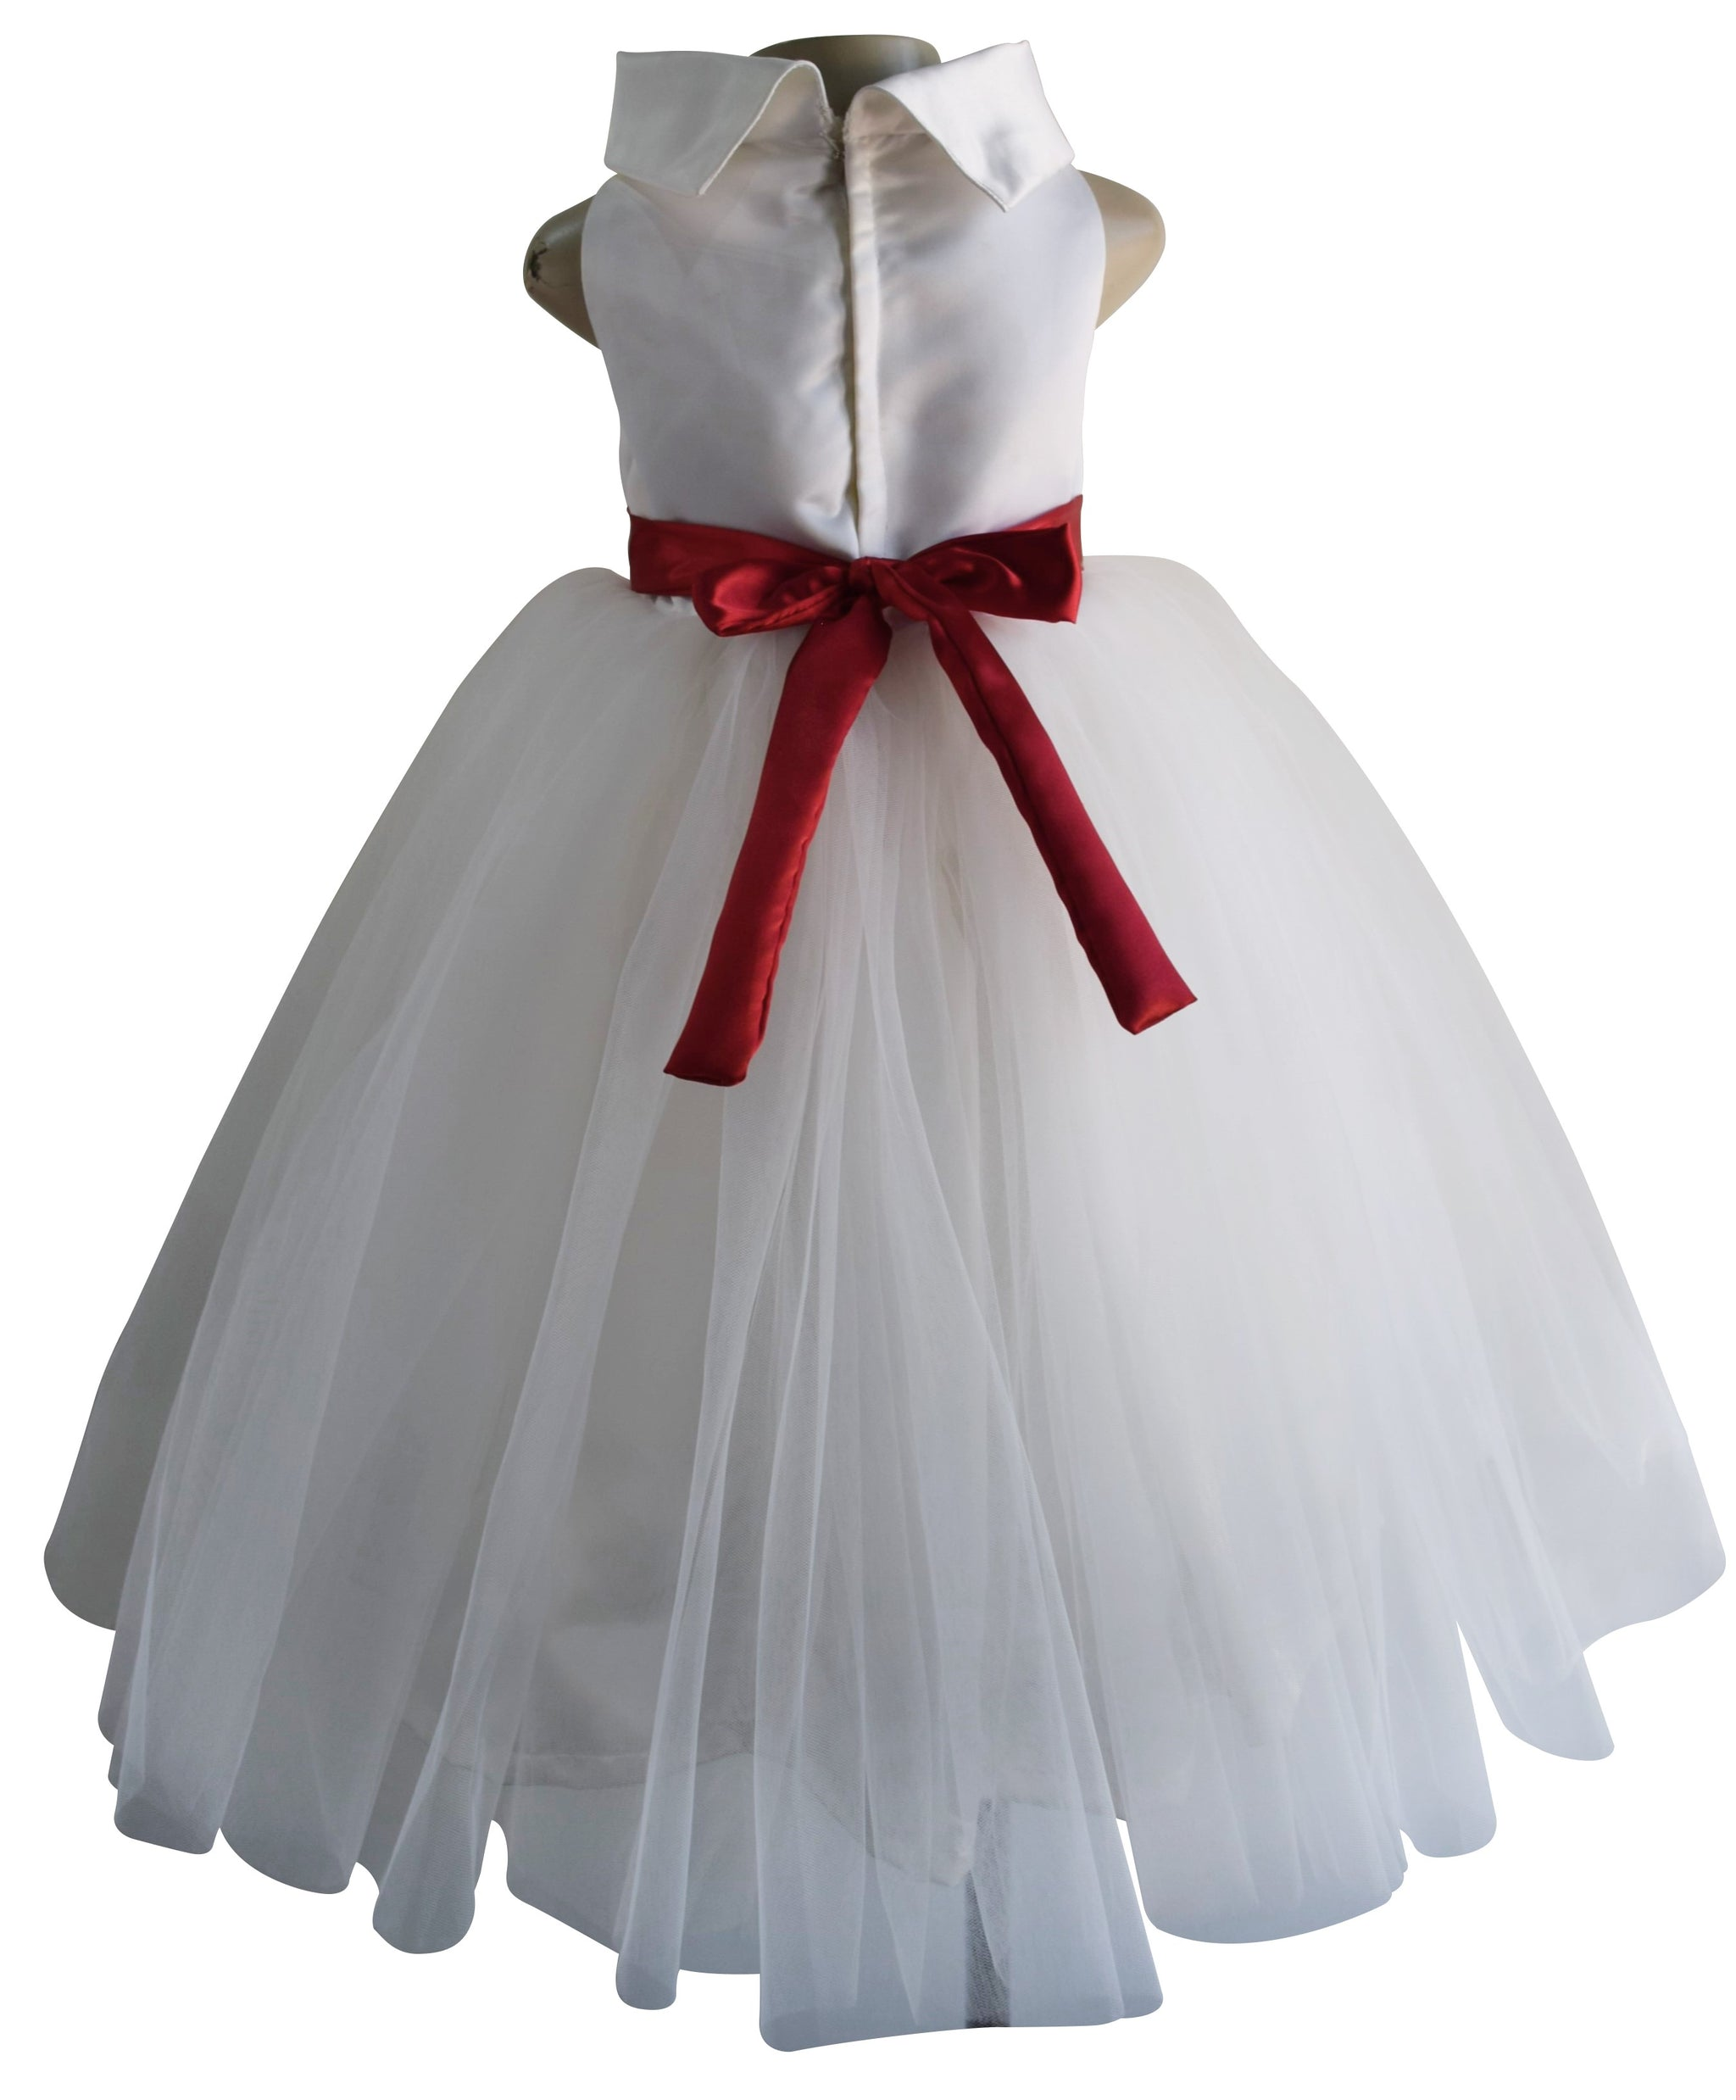 db1cac31c9c2 Kids Gowns